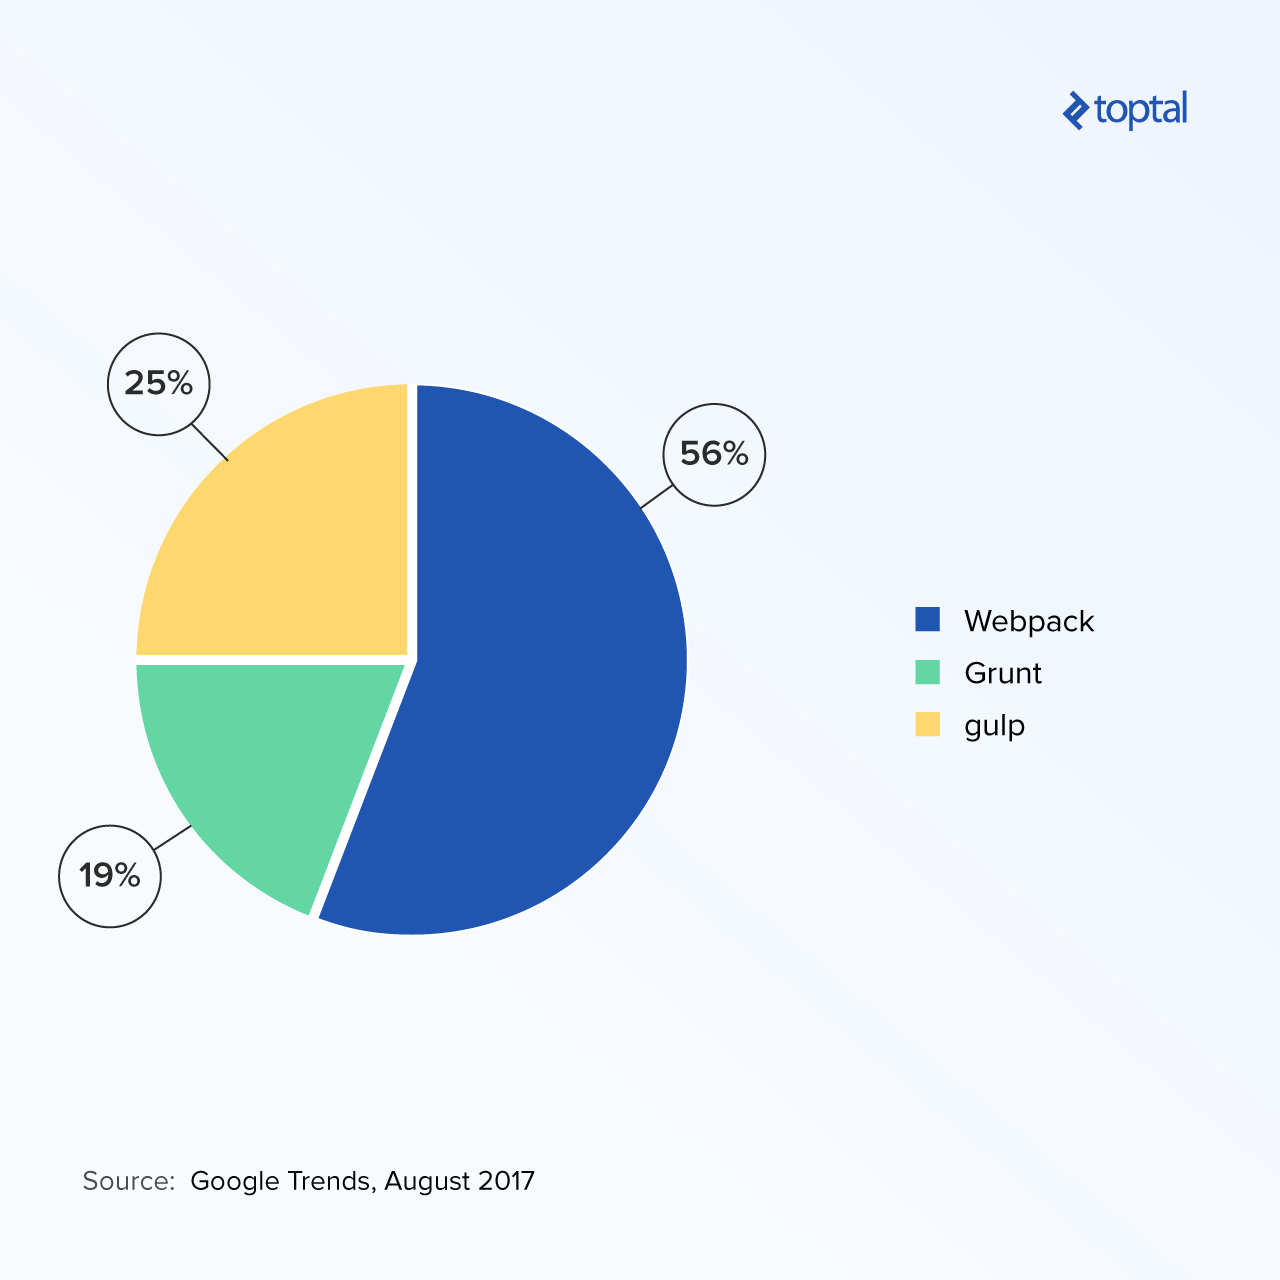 Pie chart comparing the popularity of Webpack, Grunt, and gulp, based on Google Trends data.